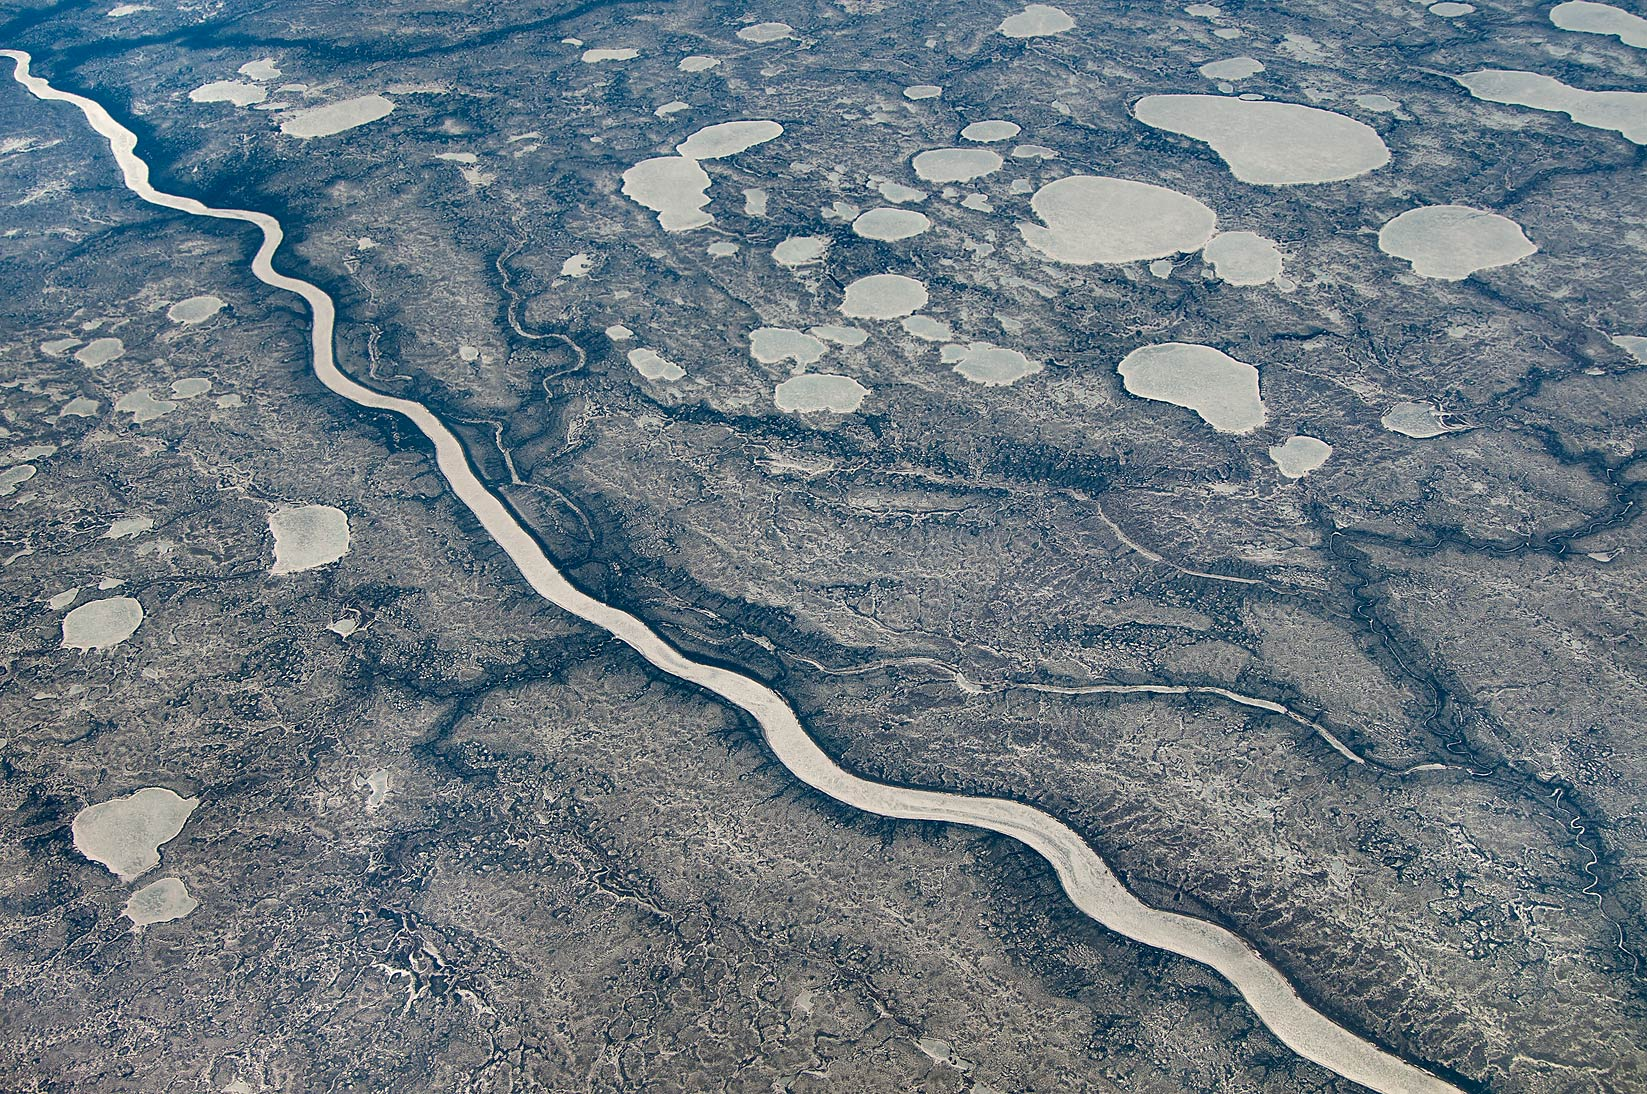 Arctic river in Canada from a window of a plane from Doha, Qatar to Houston, Texas